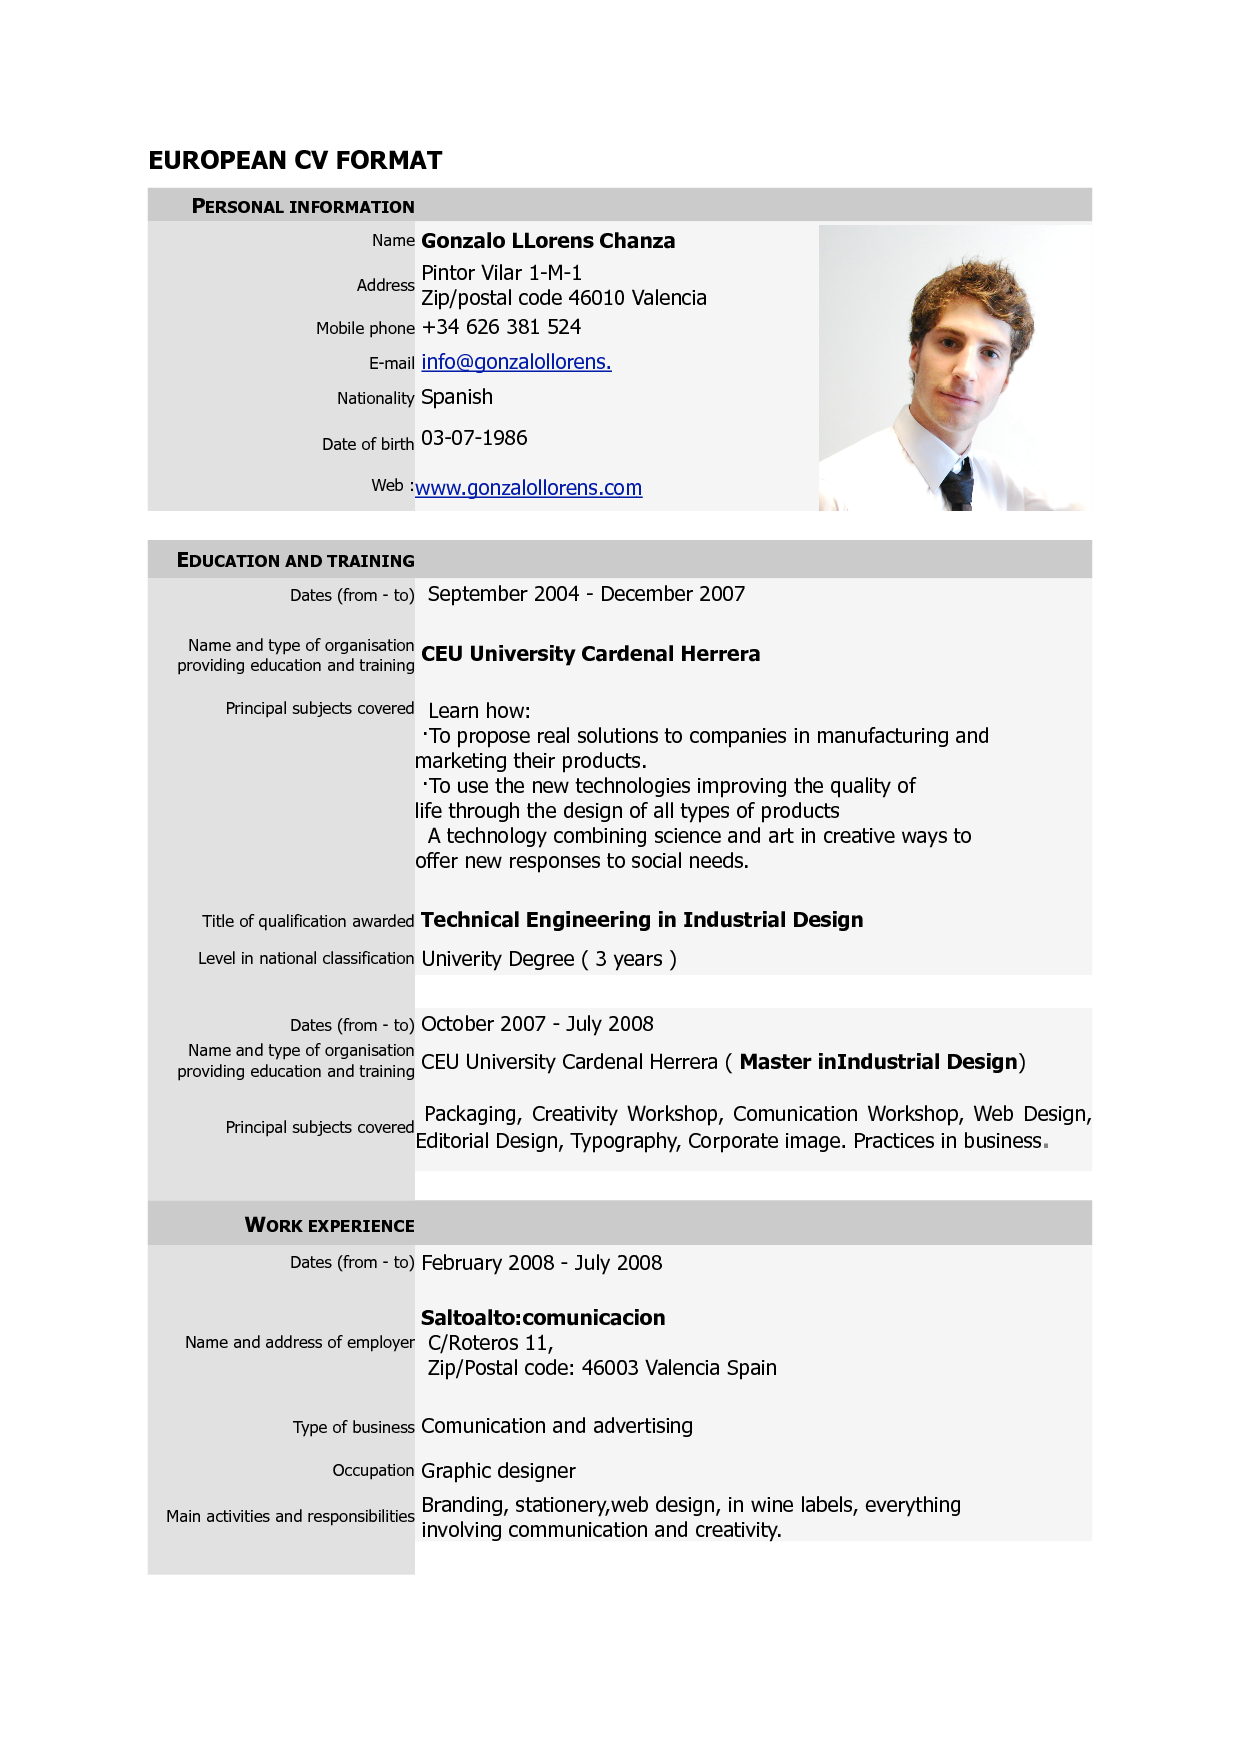 free download cv europass pdf europass home european cv format pdf - Free Download Resume Samples